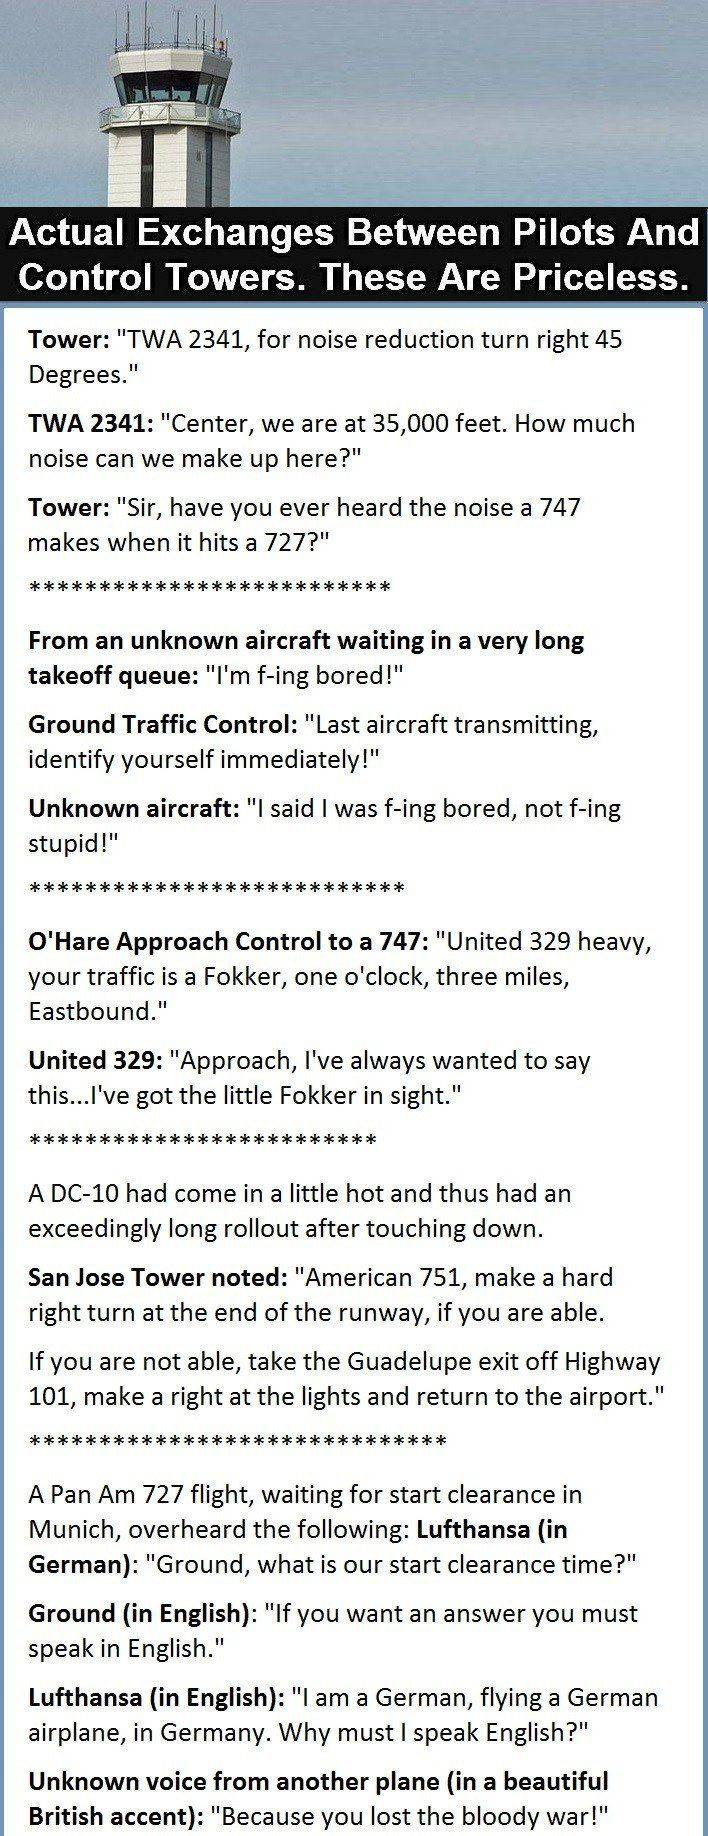 These Real Exchanges Between Pilots And Control Towers Will Leave You In Stitches